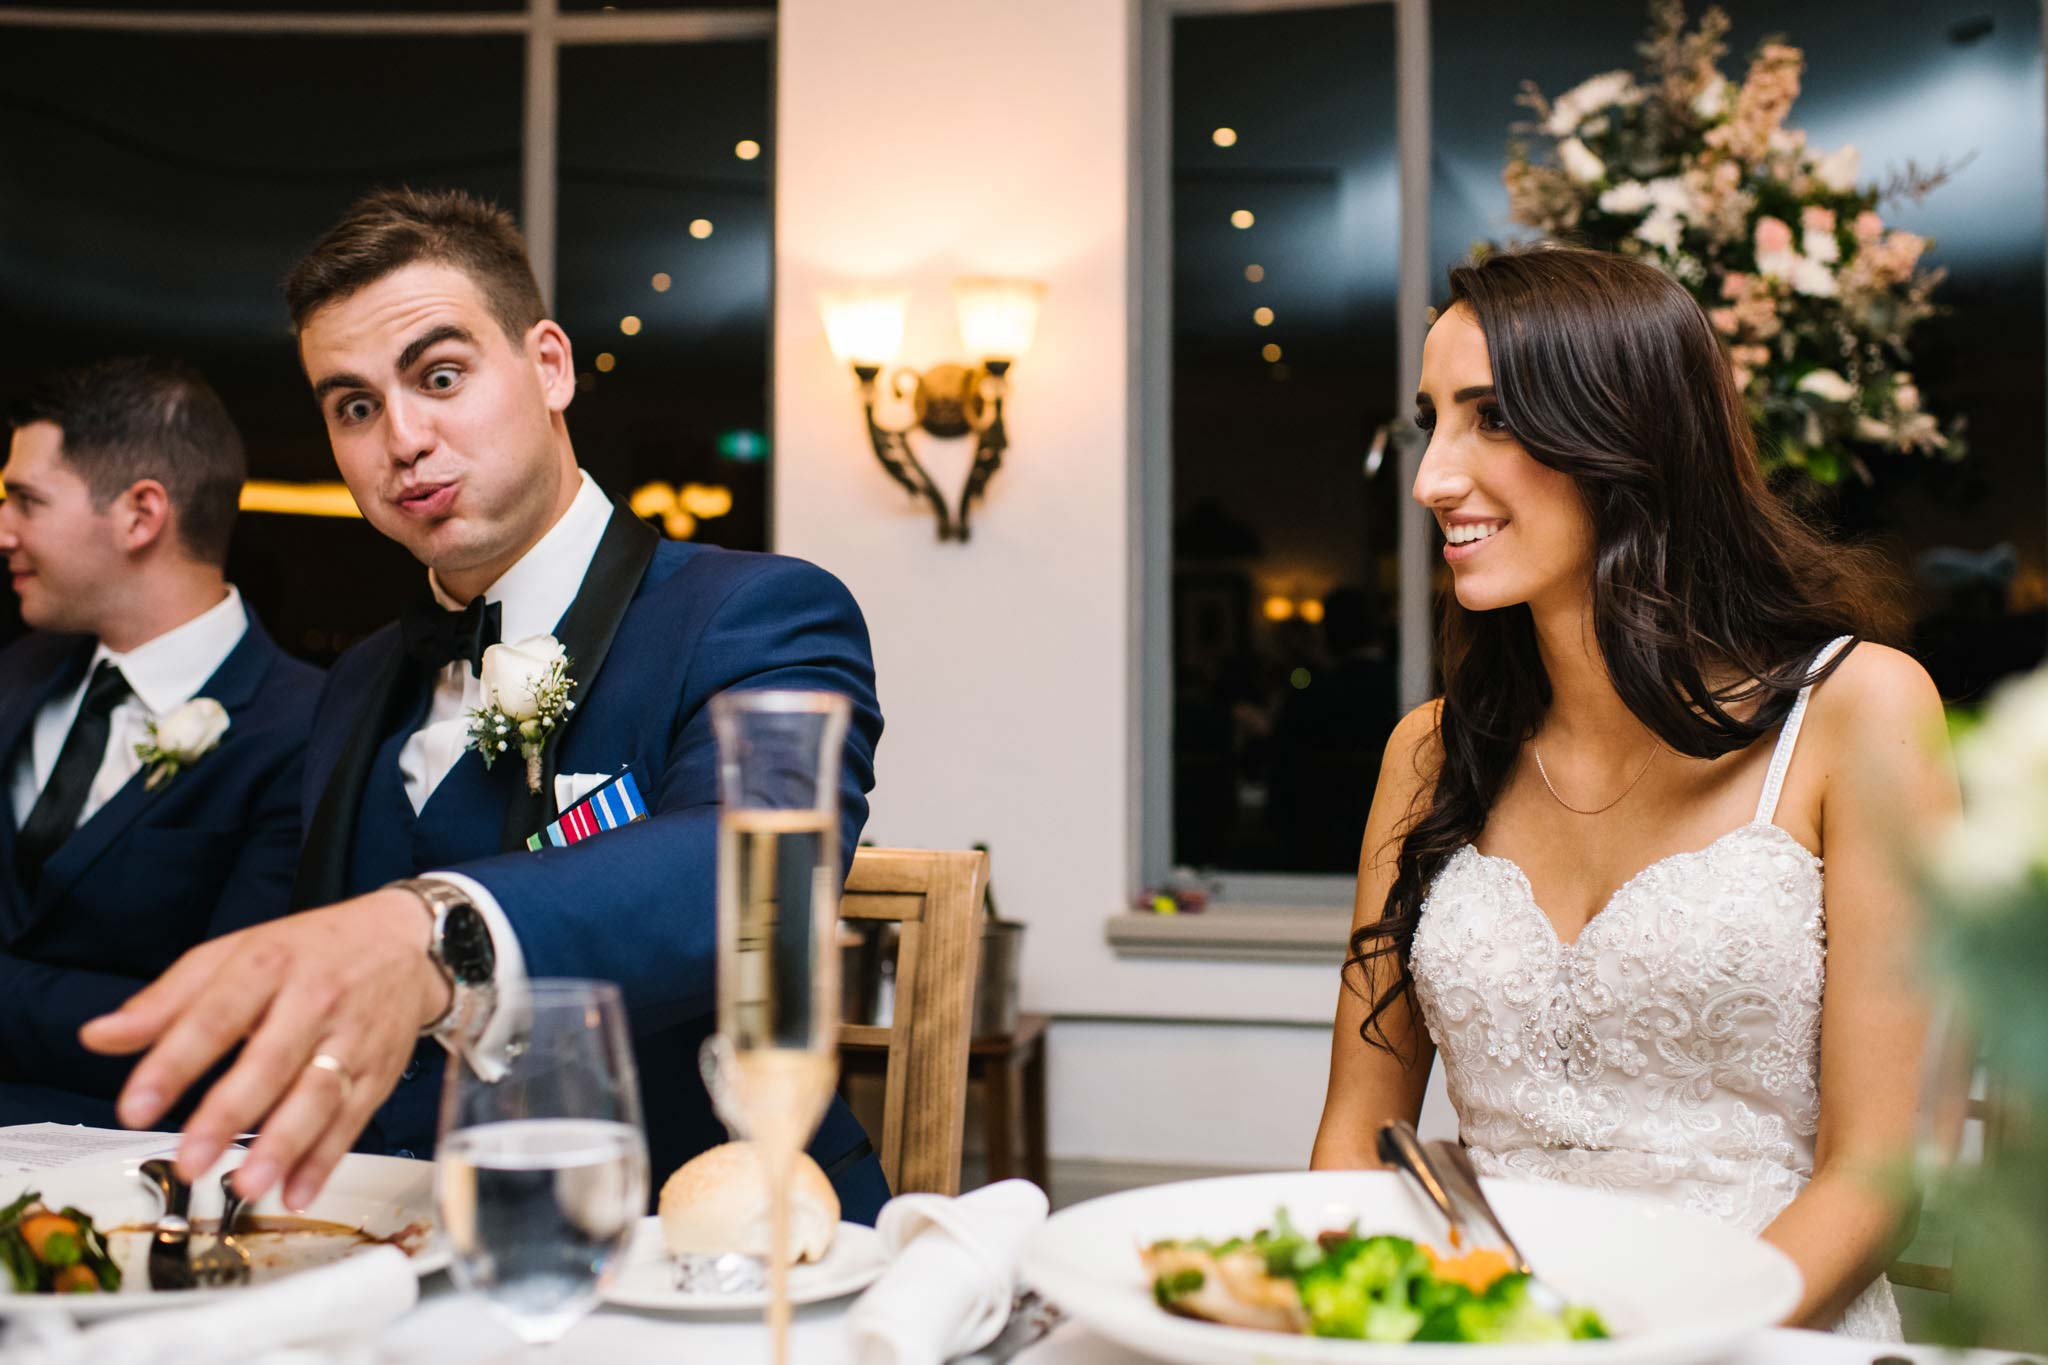 Groom makes a funny face as he reaches for his first drink at wedding reception